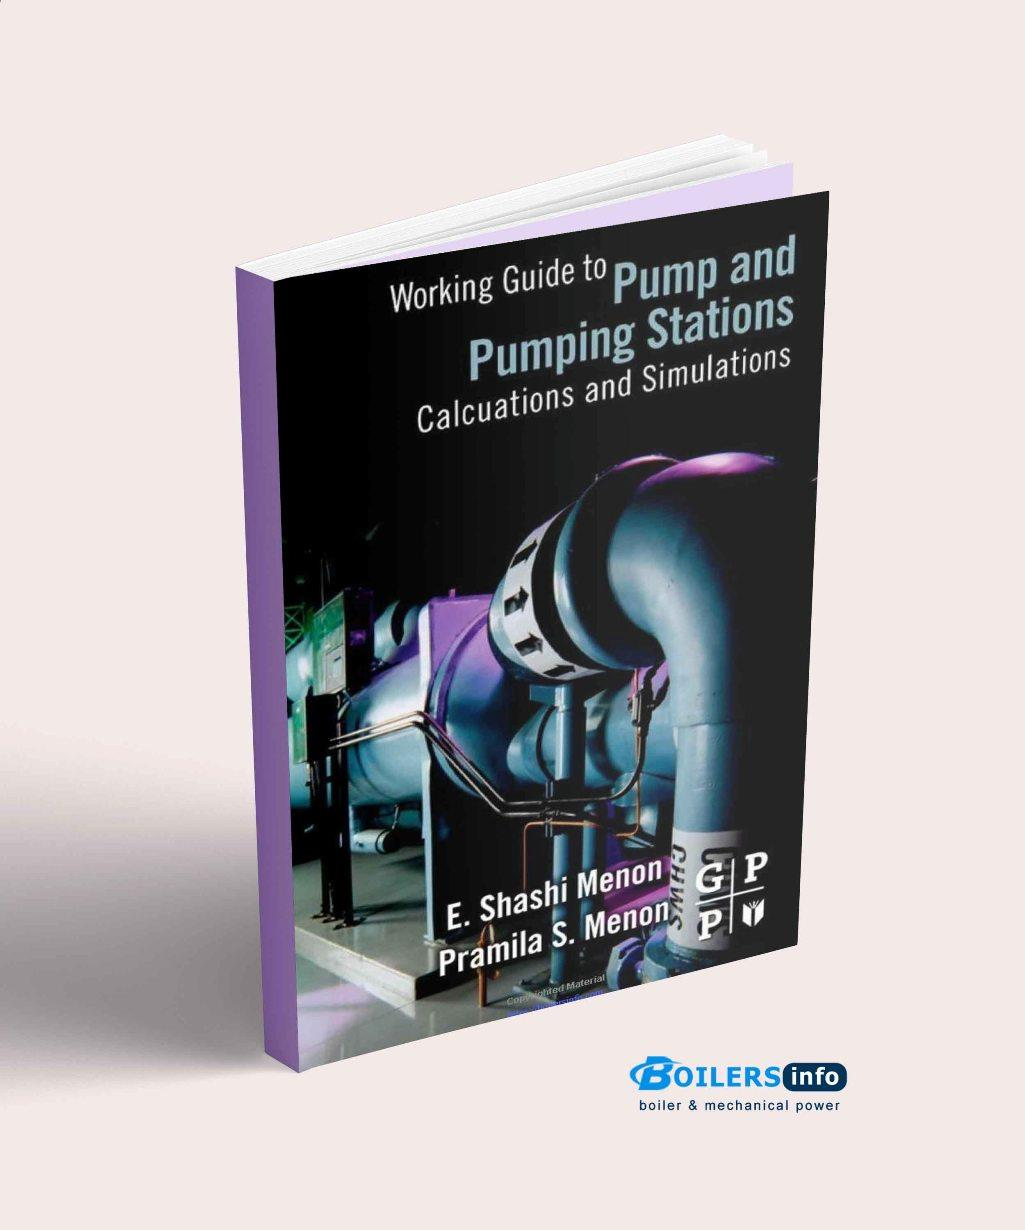 Working Guide to Pumps and Pumping Stations